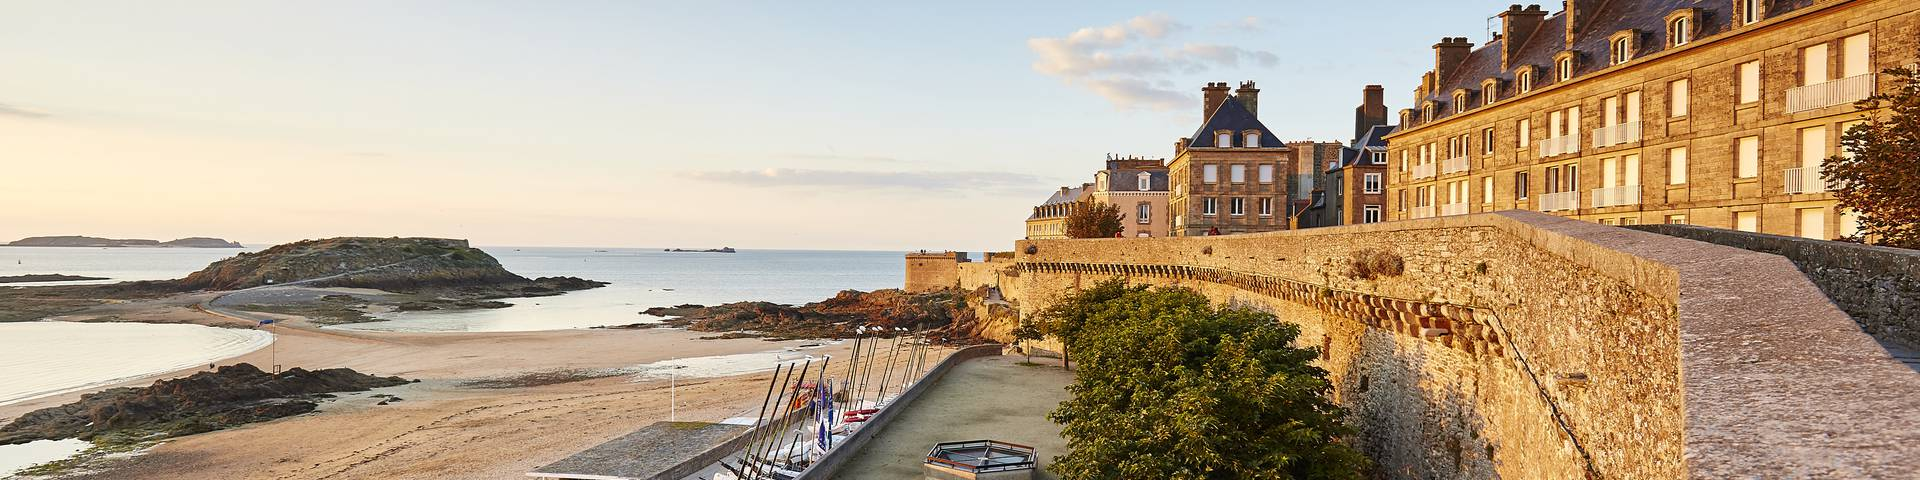 To see and do | Saint-Malo - Bay of Mont-Saint-Michel - Tourism